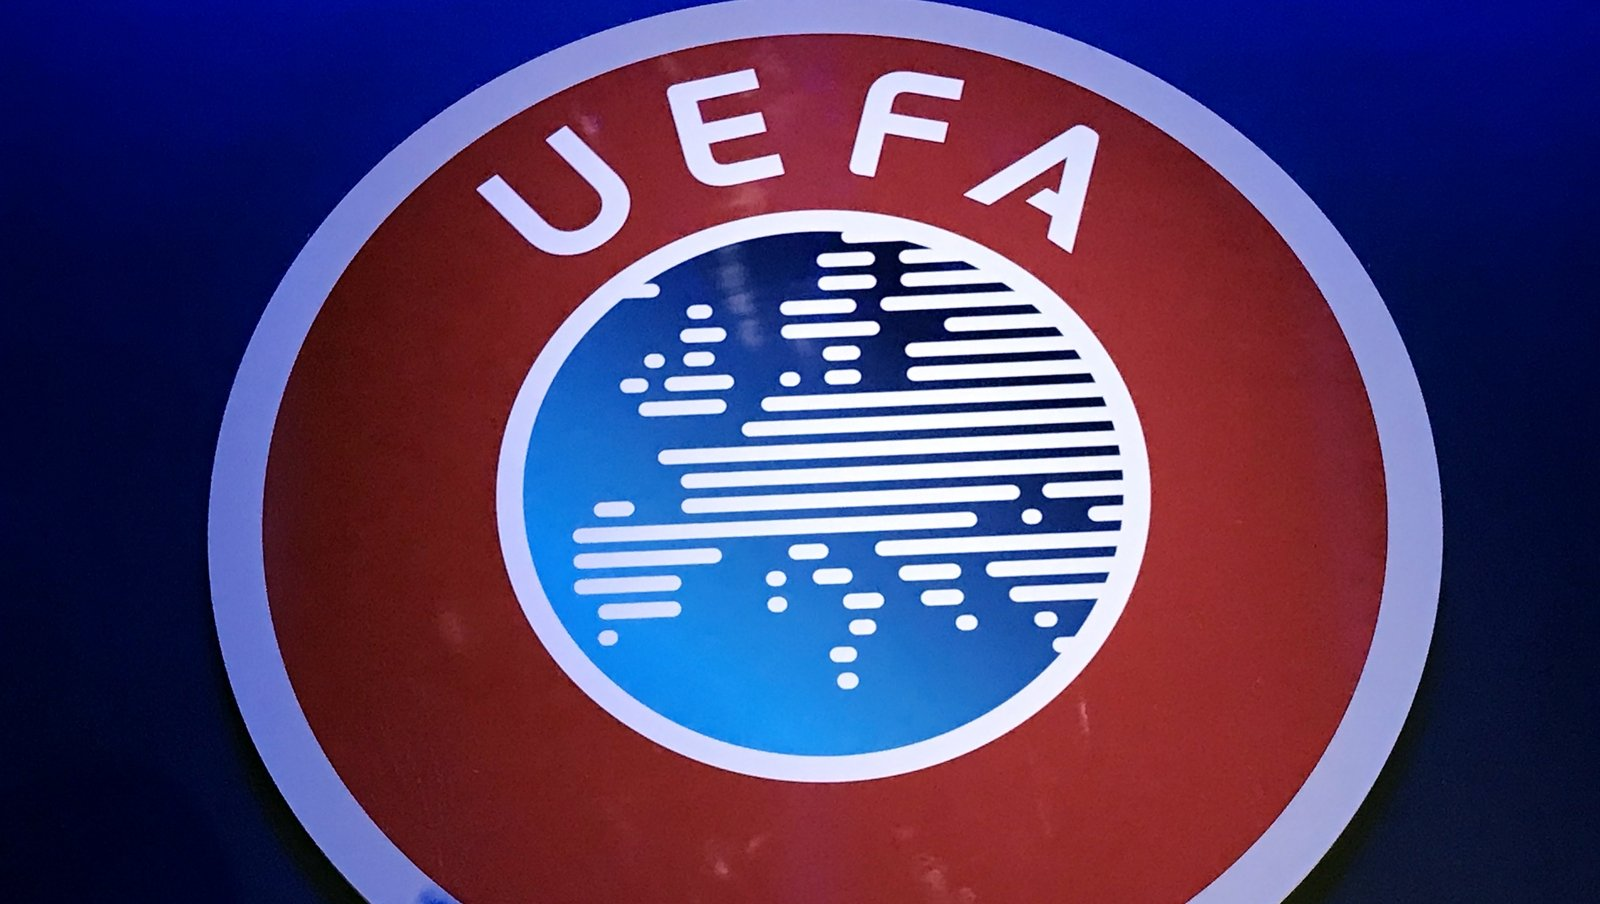 UEFA secures court docket picture to dam illegal streaming